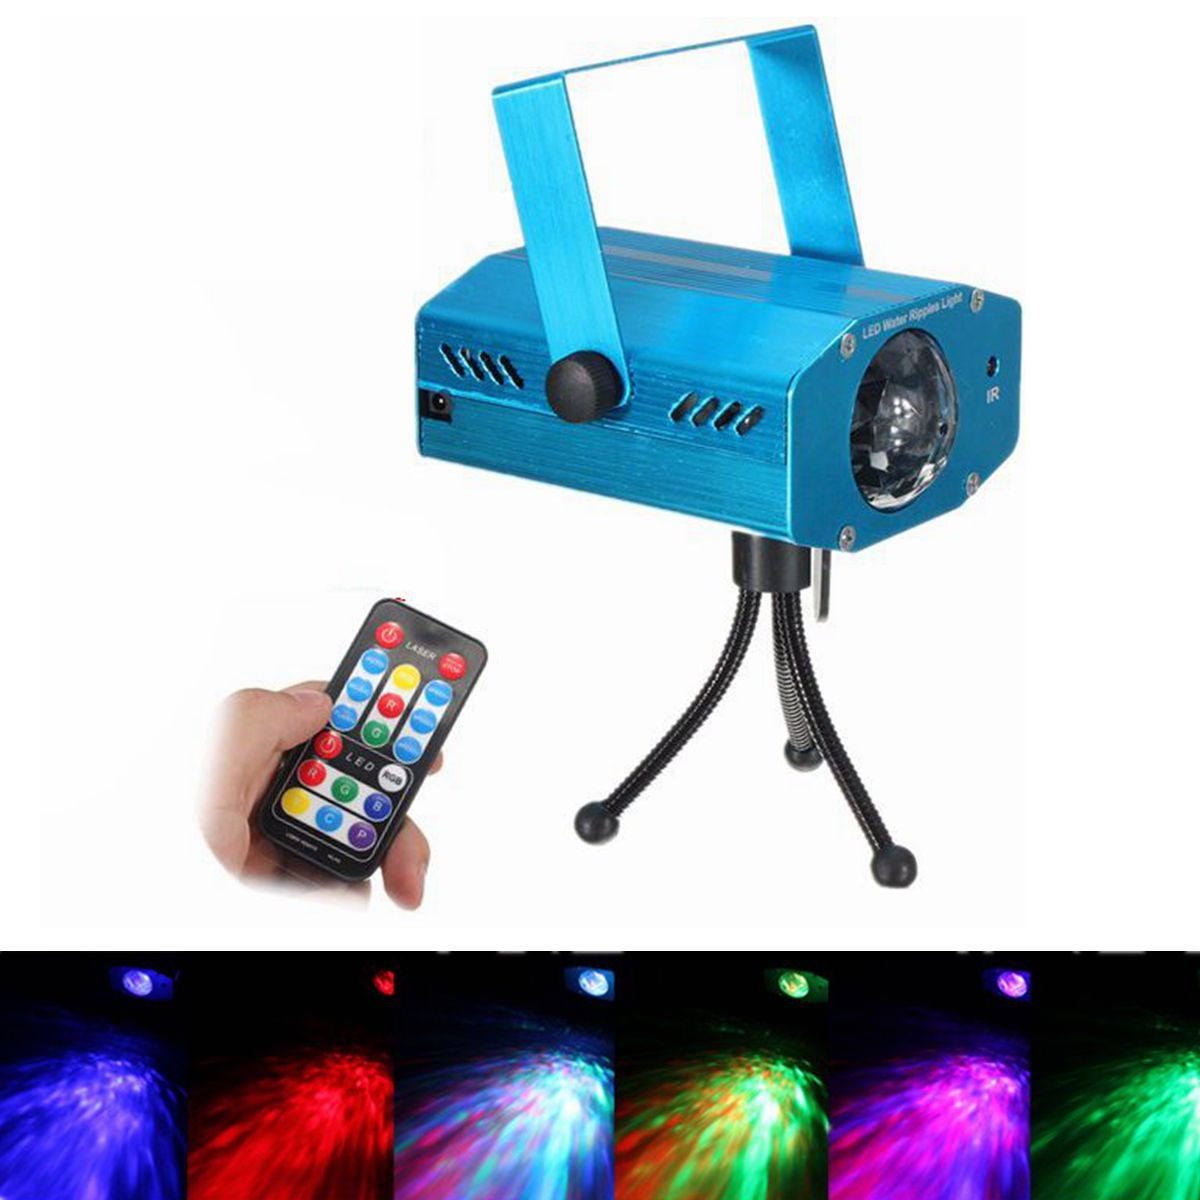 Aluminium LED RGB Voice Control Strobe Projector Laser Stage Light Night Lamp Disco Club KTV Wedding Party Show Lighting Effect w188a led rgb voice control stage light lamp for ktv bar party white